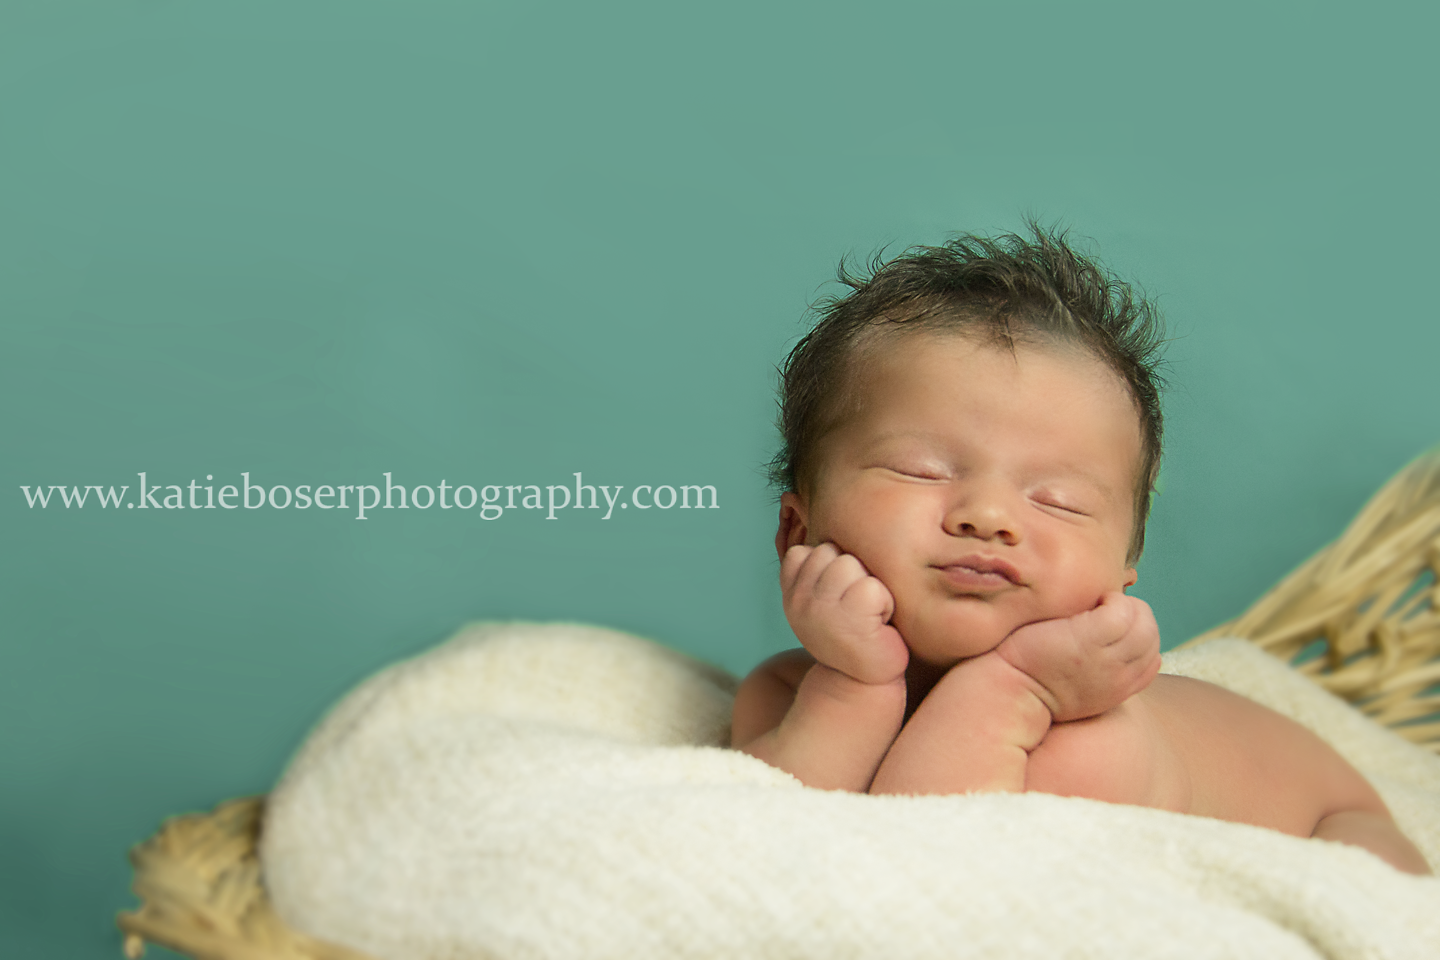 Katie boser photography newborn photography frog pose